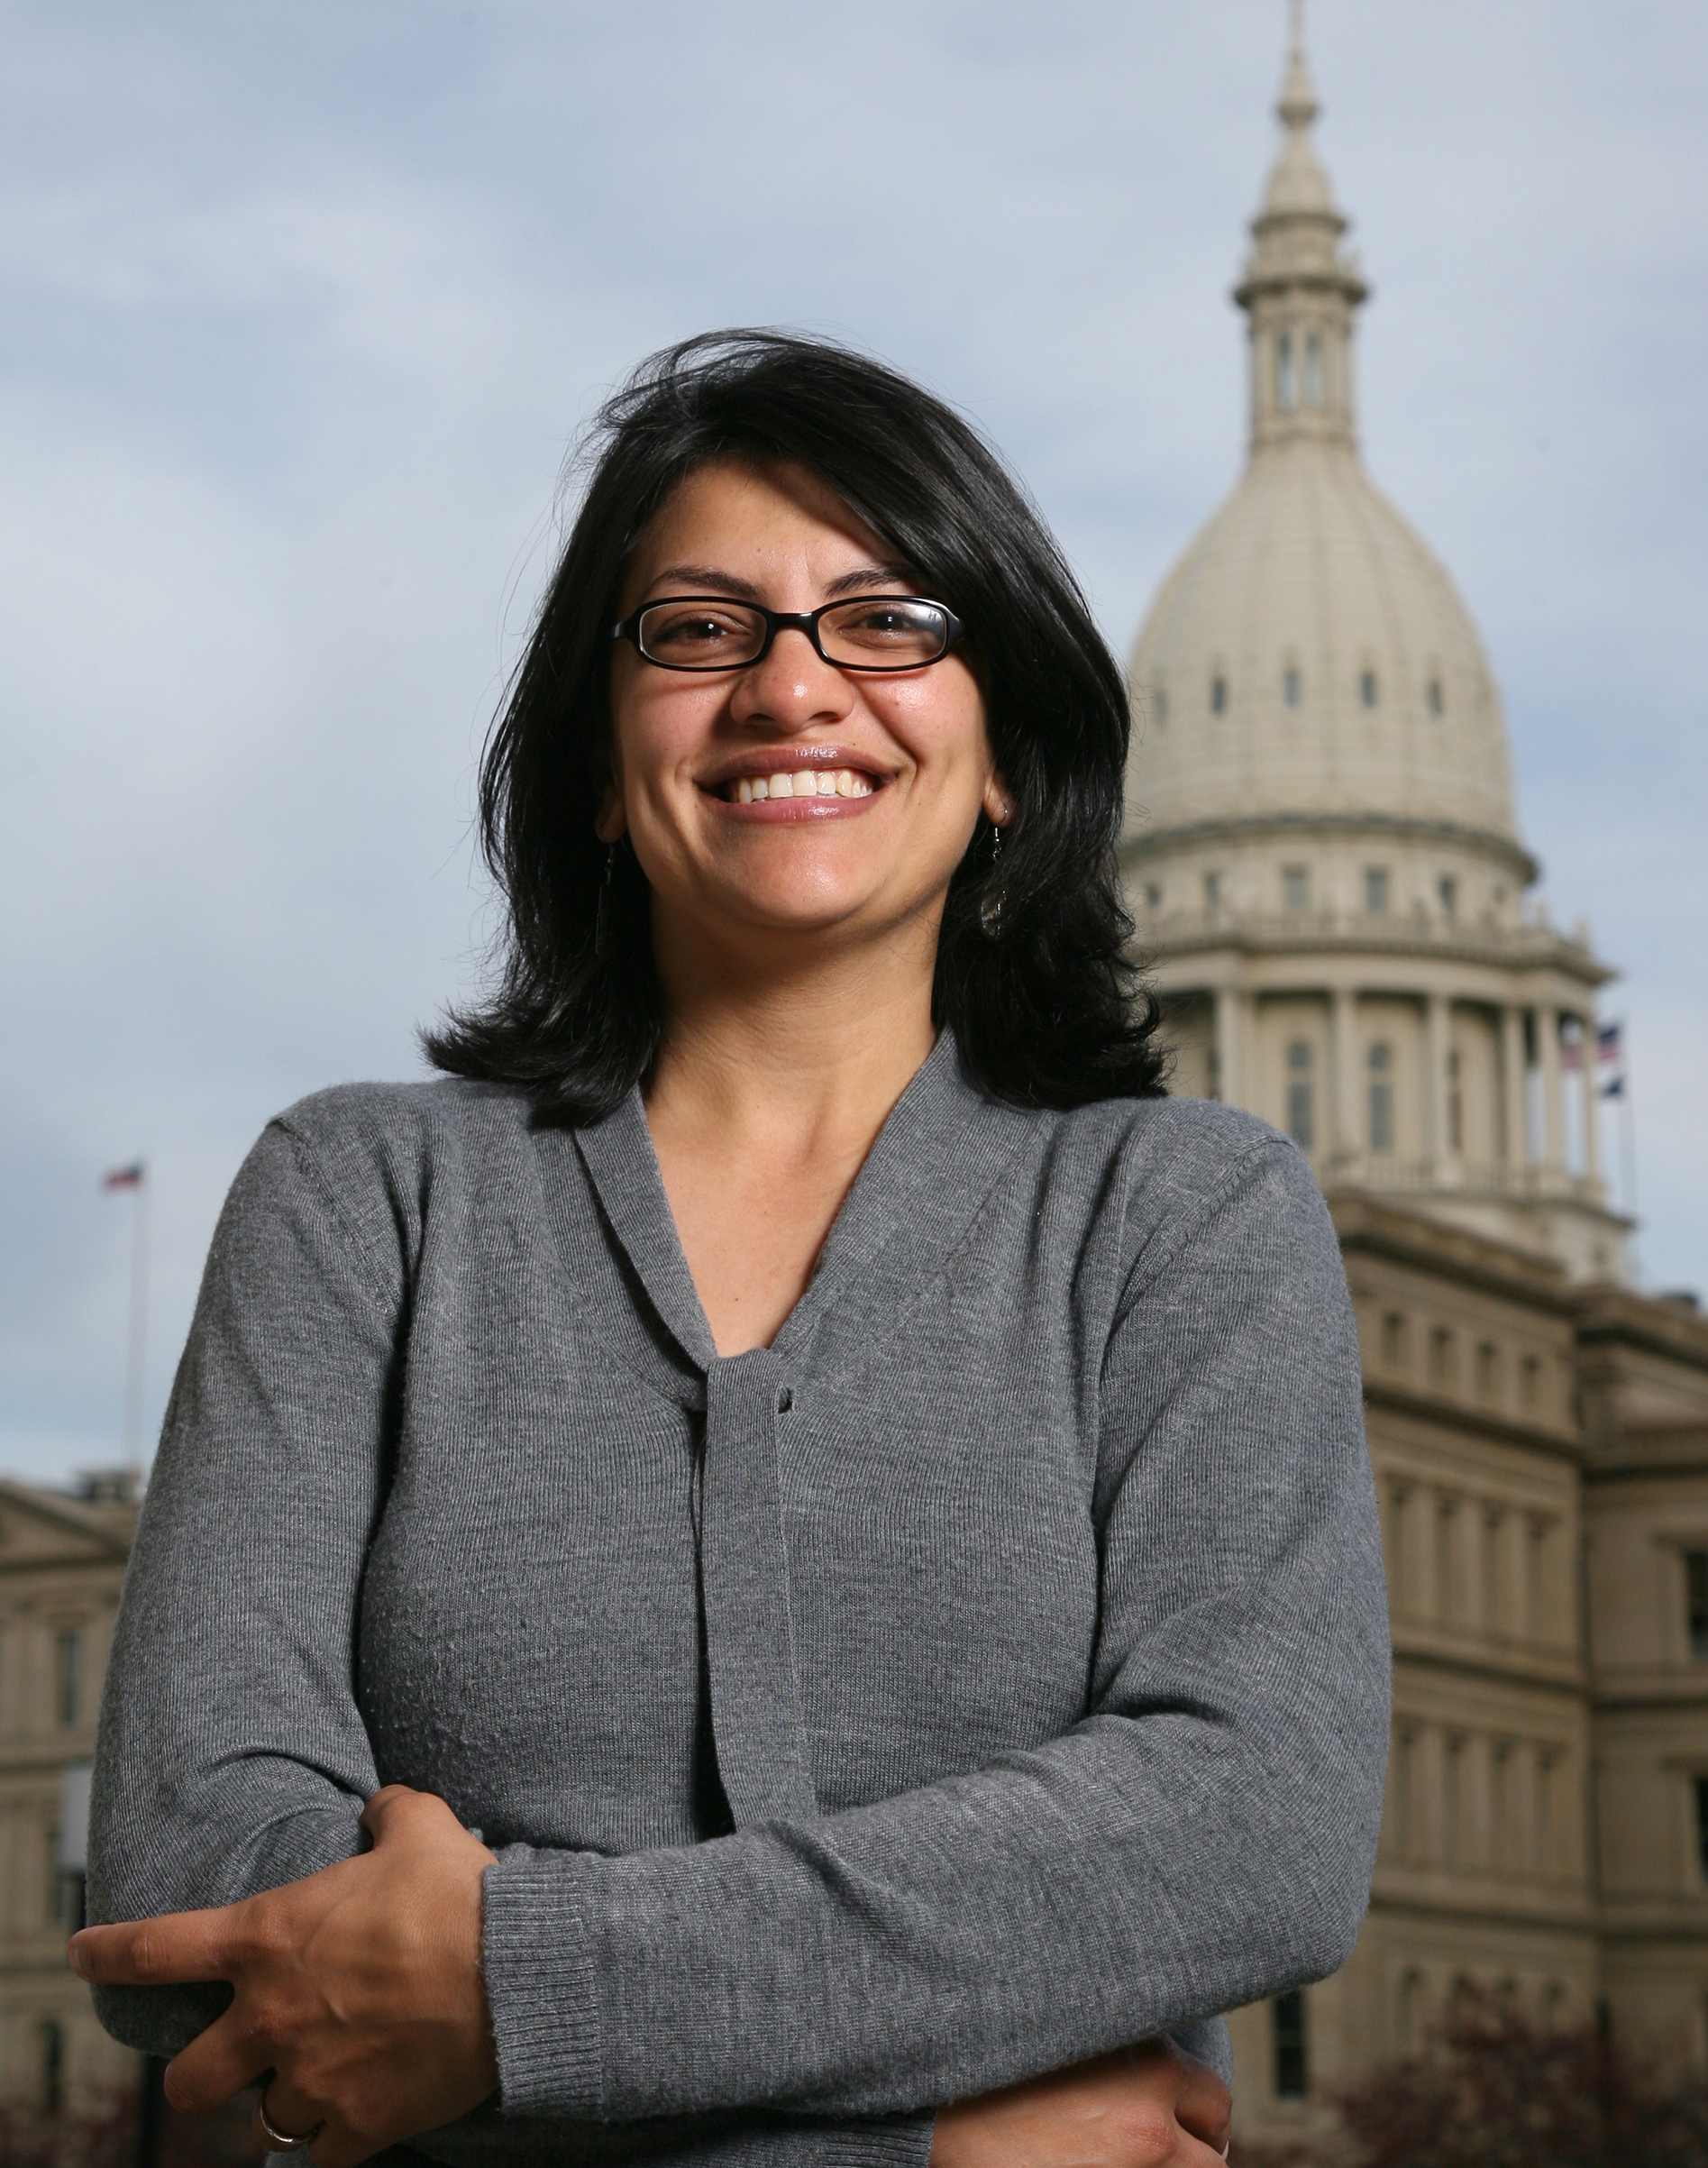 Rashida Tlaib is shown in front of the Michigan Capitol after her election as the first Muslim woman to serve in the state House.